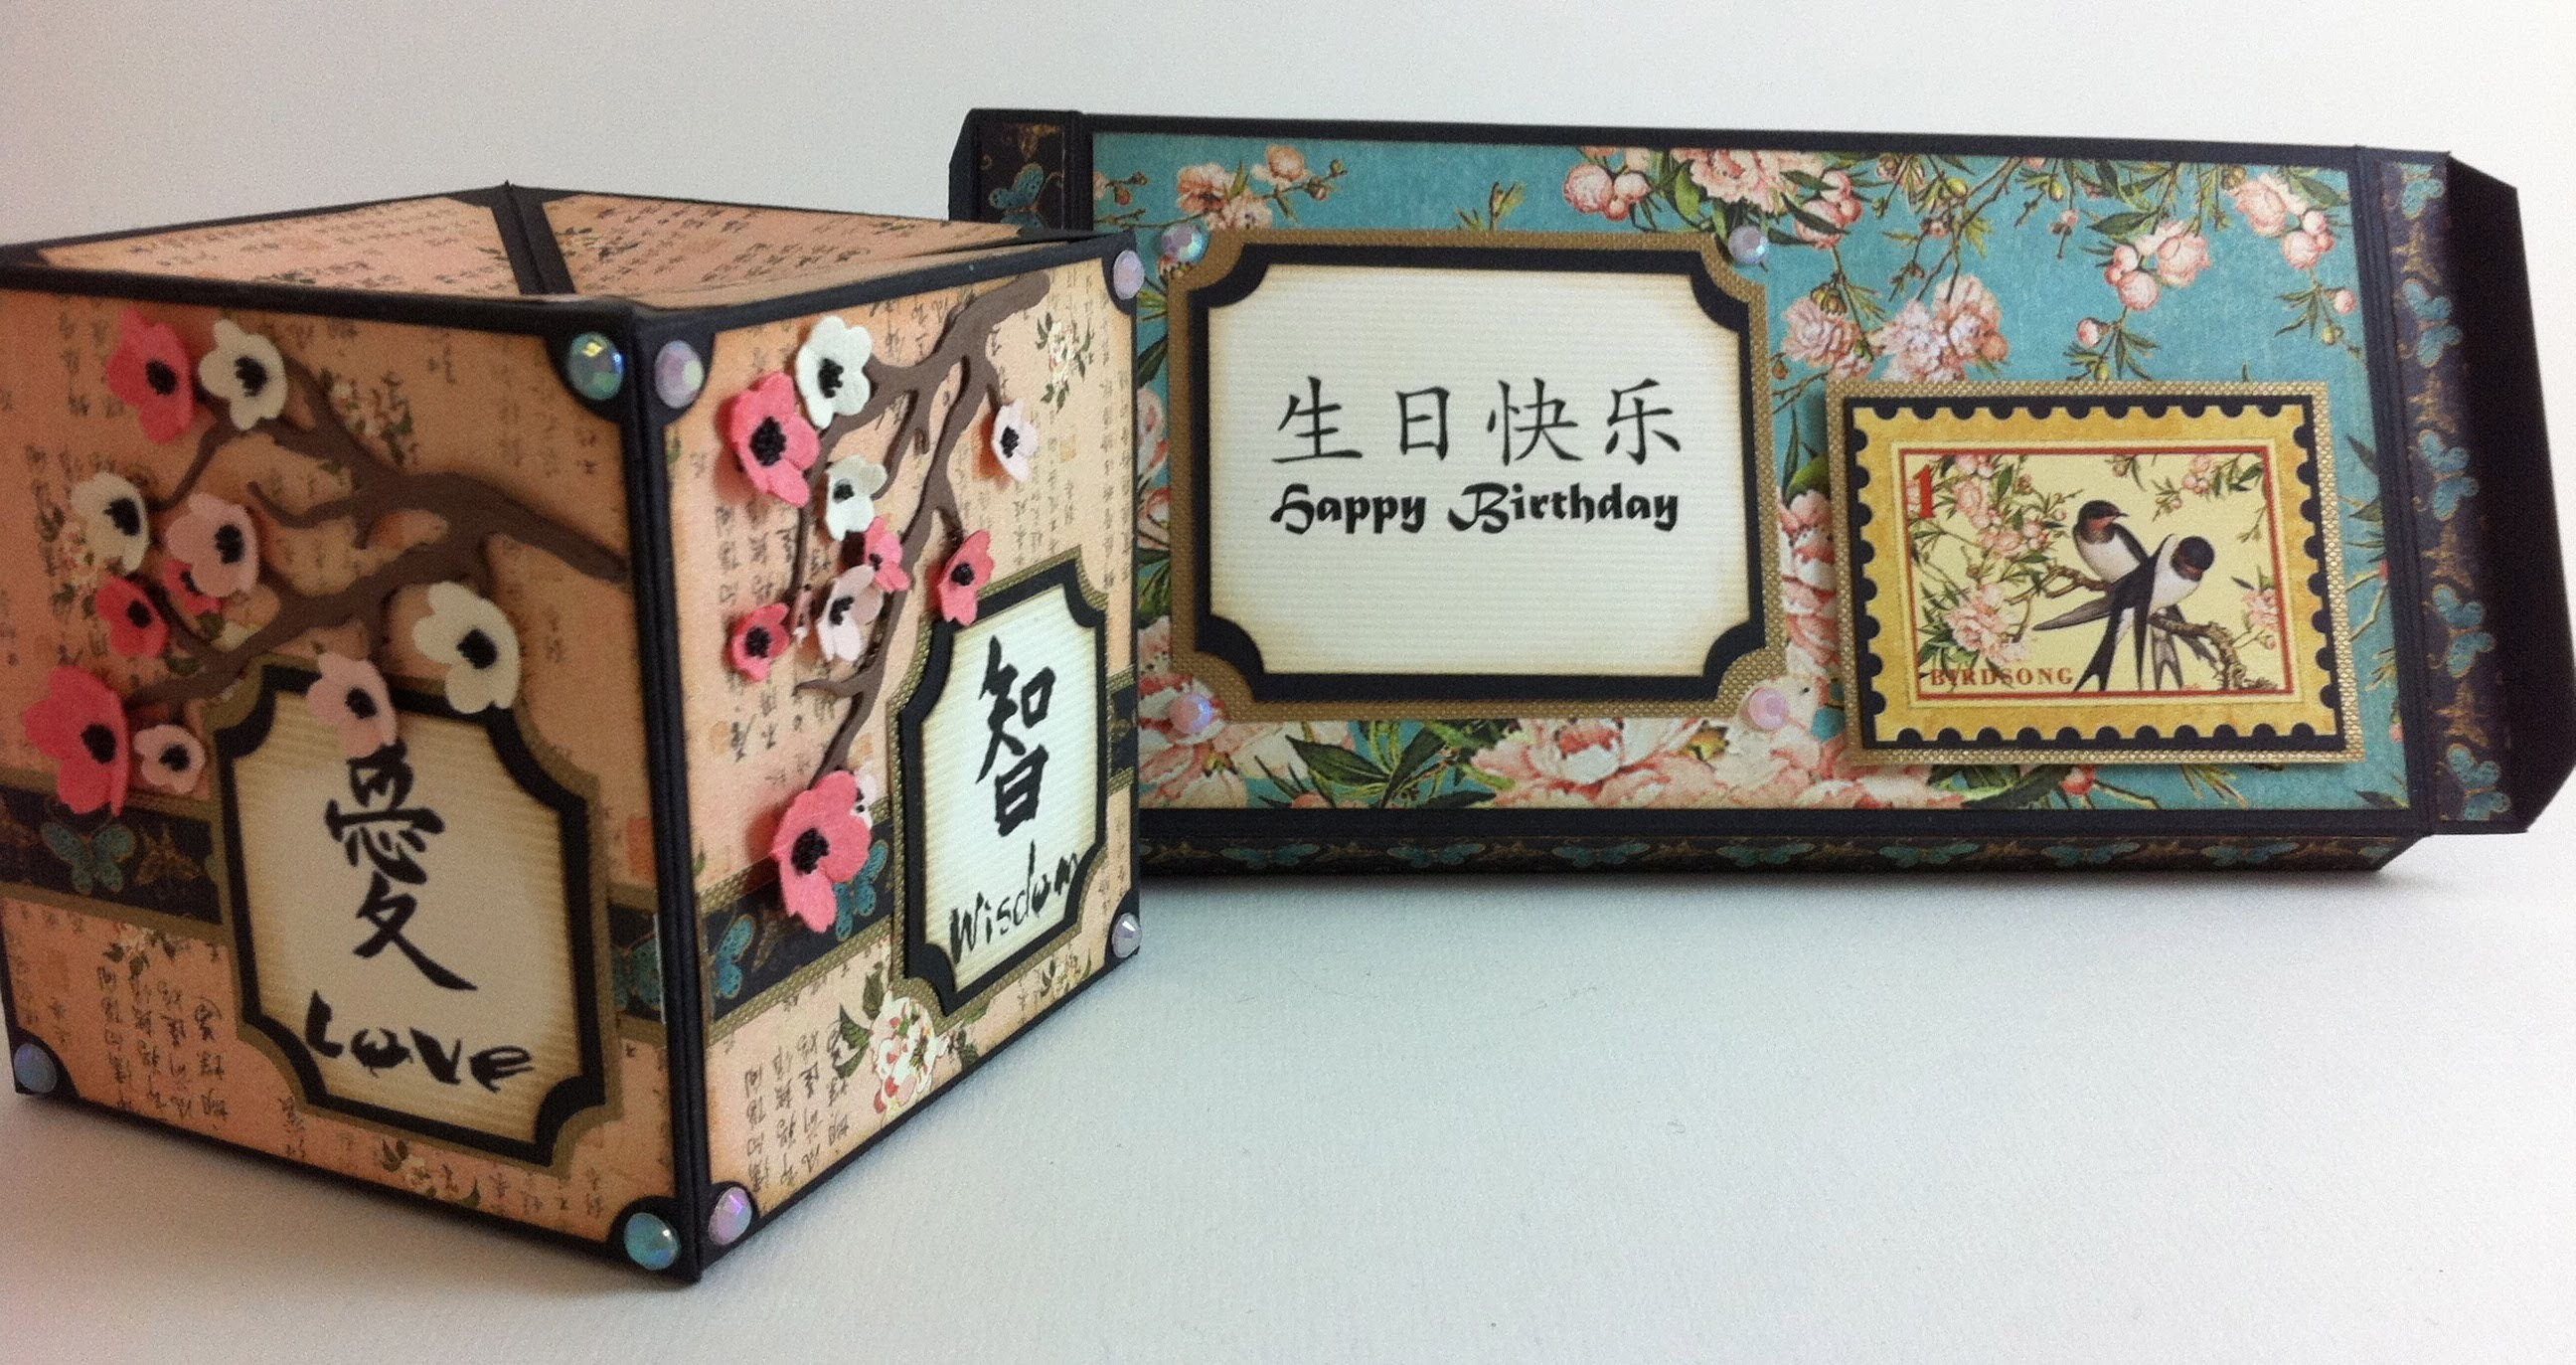 Another idea for The Surprise Package - Workshop available from The Craft Project Shop